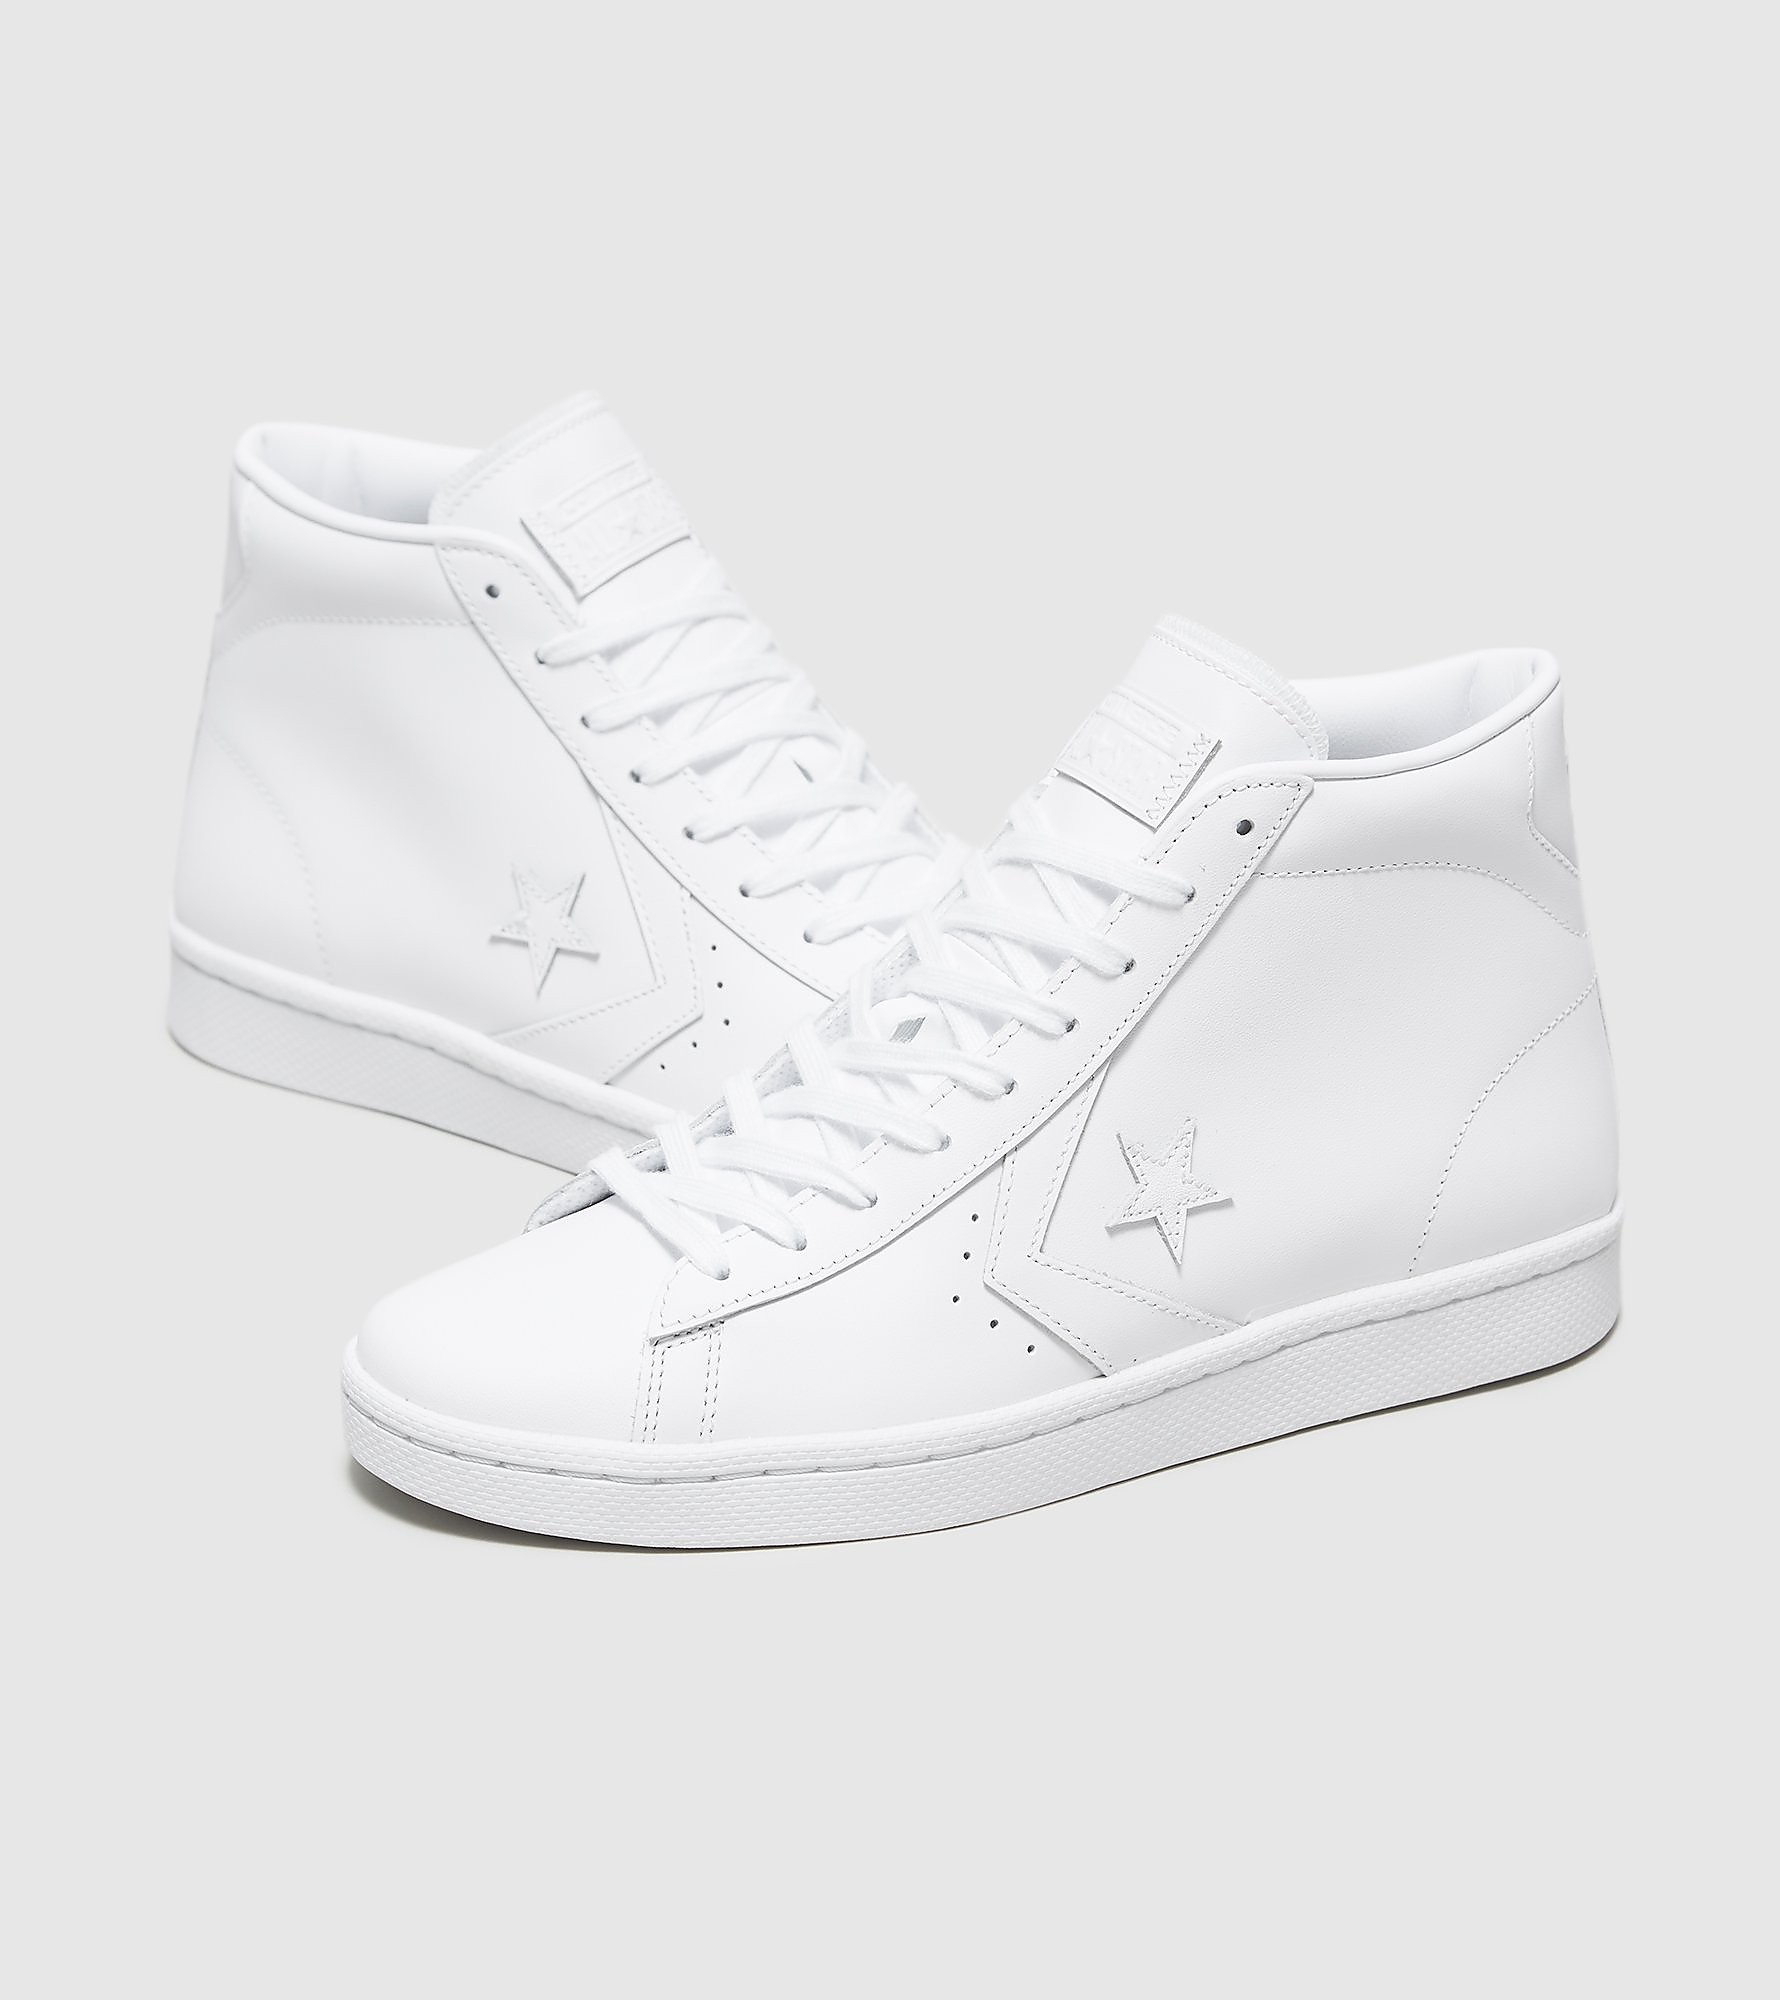 Converse Pro Leather '76 Hi